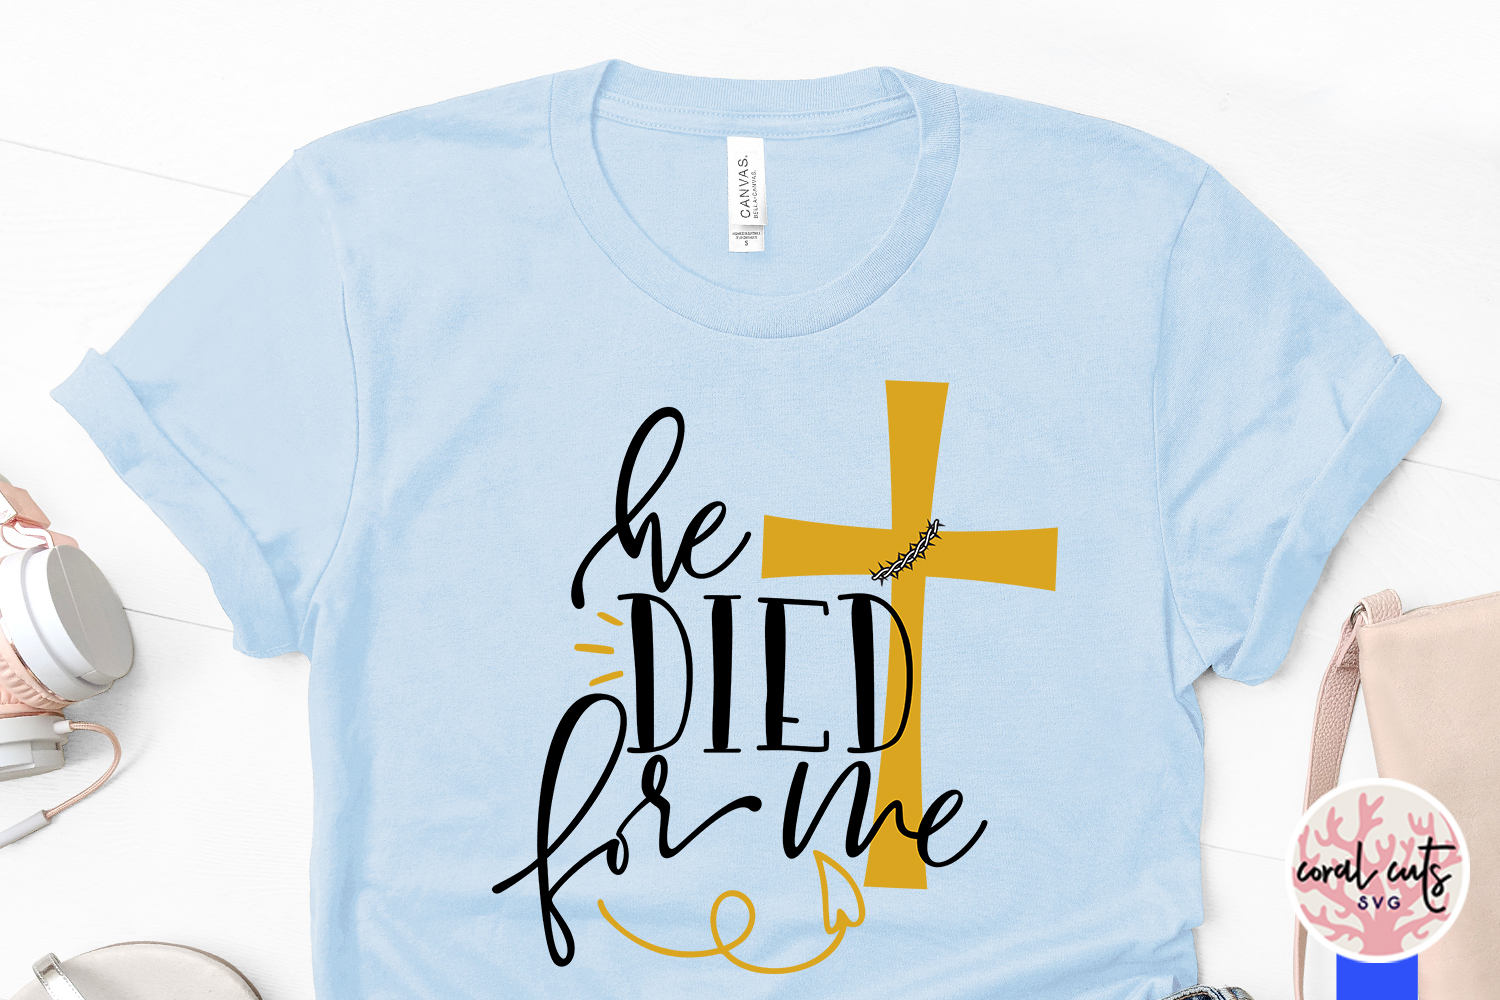 He died for me - Easter JesusSVG EPS DXF PNG Cutting File example image 3